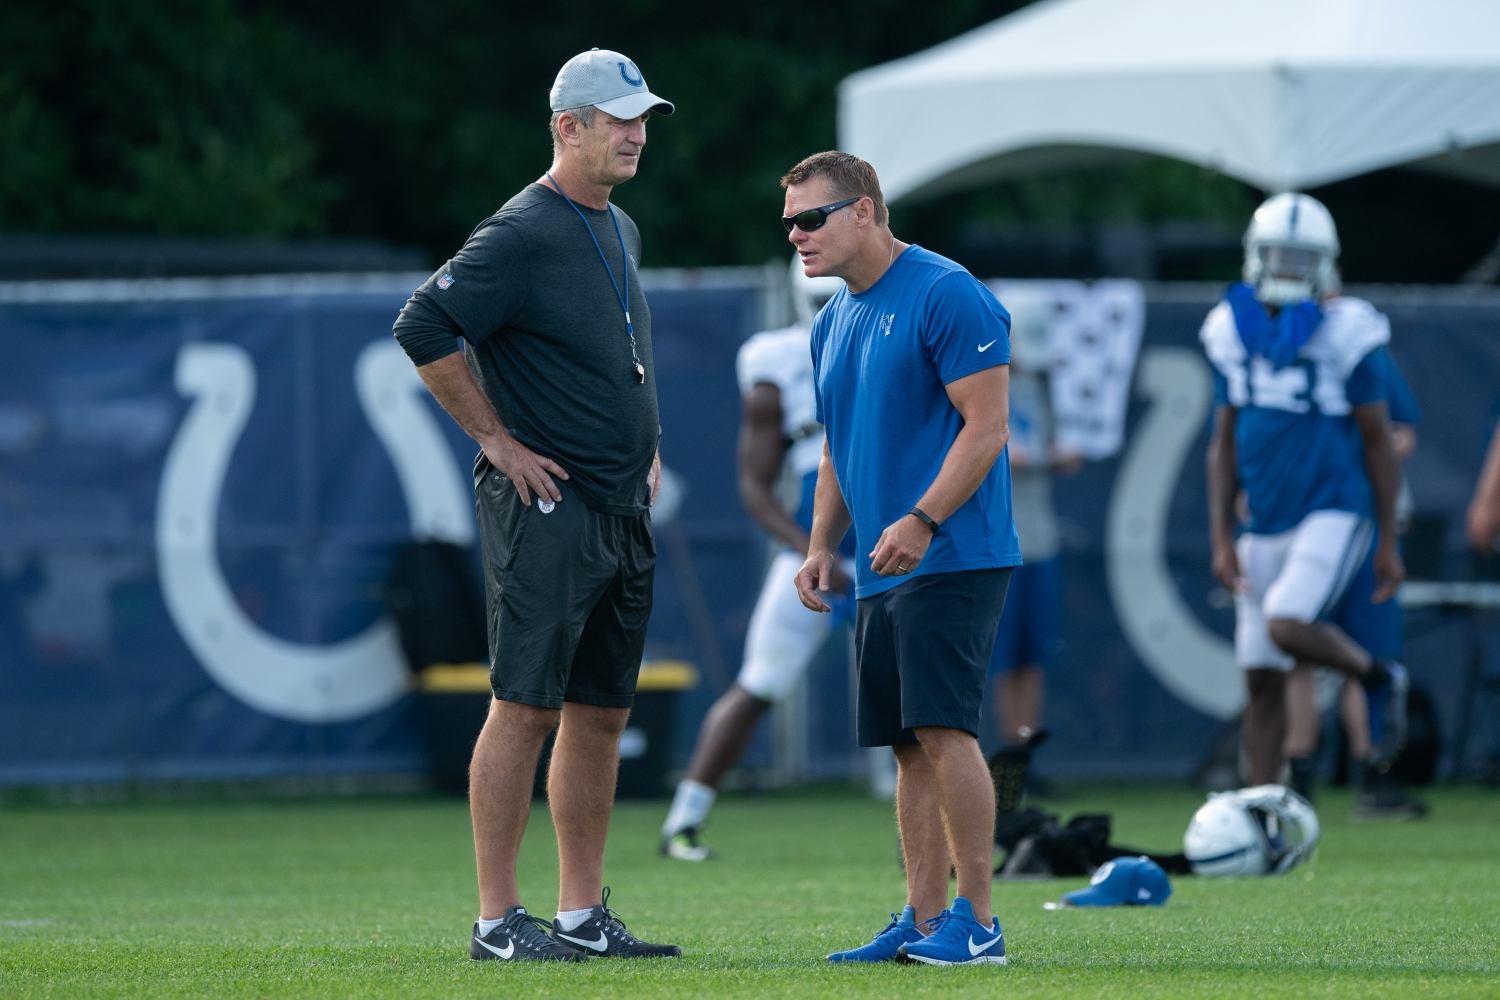 Indianapolis Colts general manager Chris Ballard talks to head coach Frank Reich on the field before the Indianapolis Colts training camp practice.